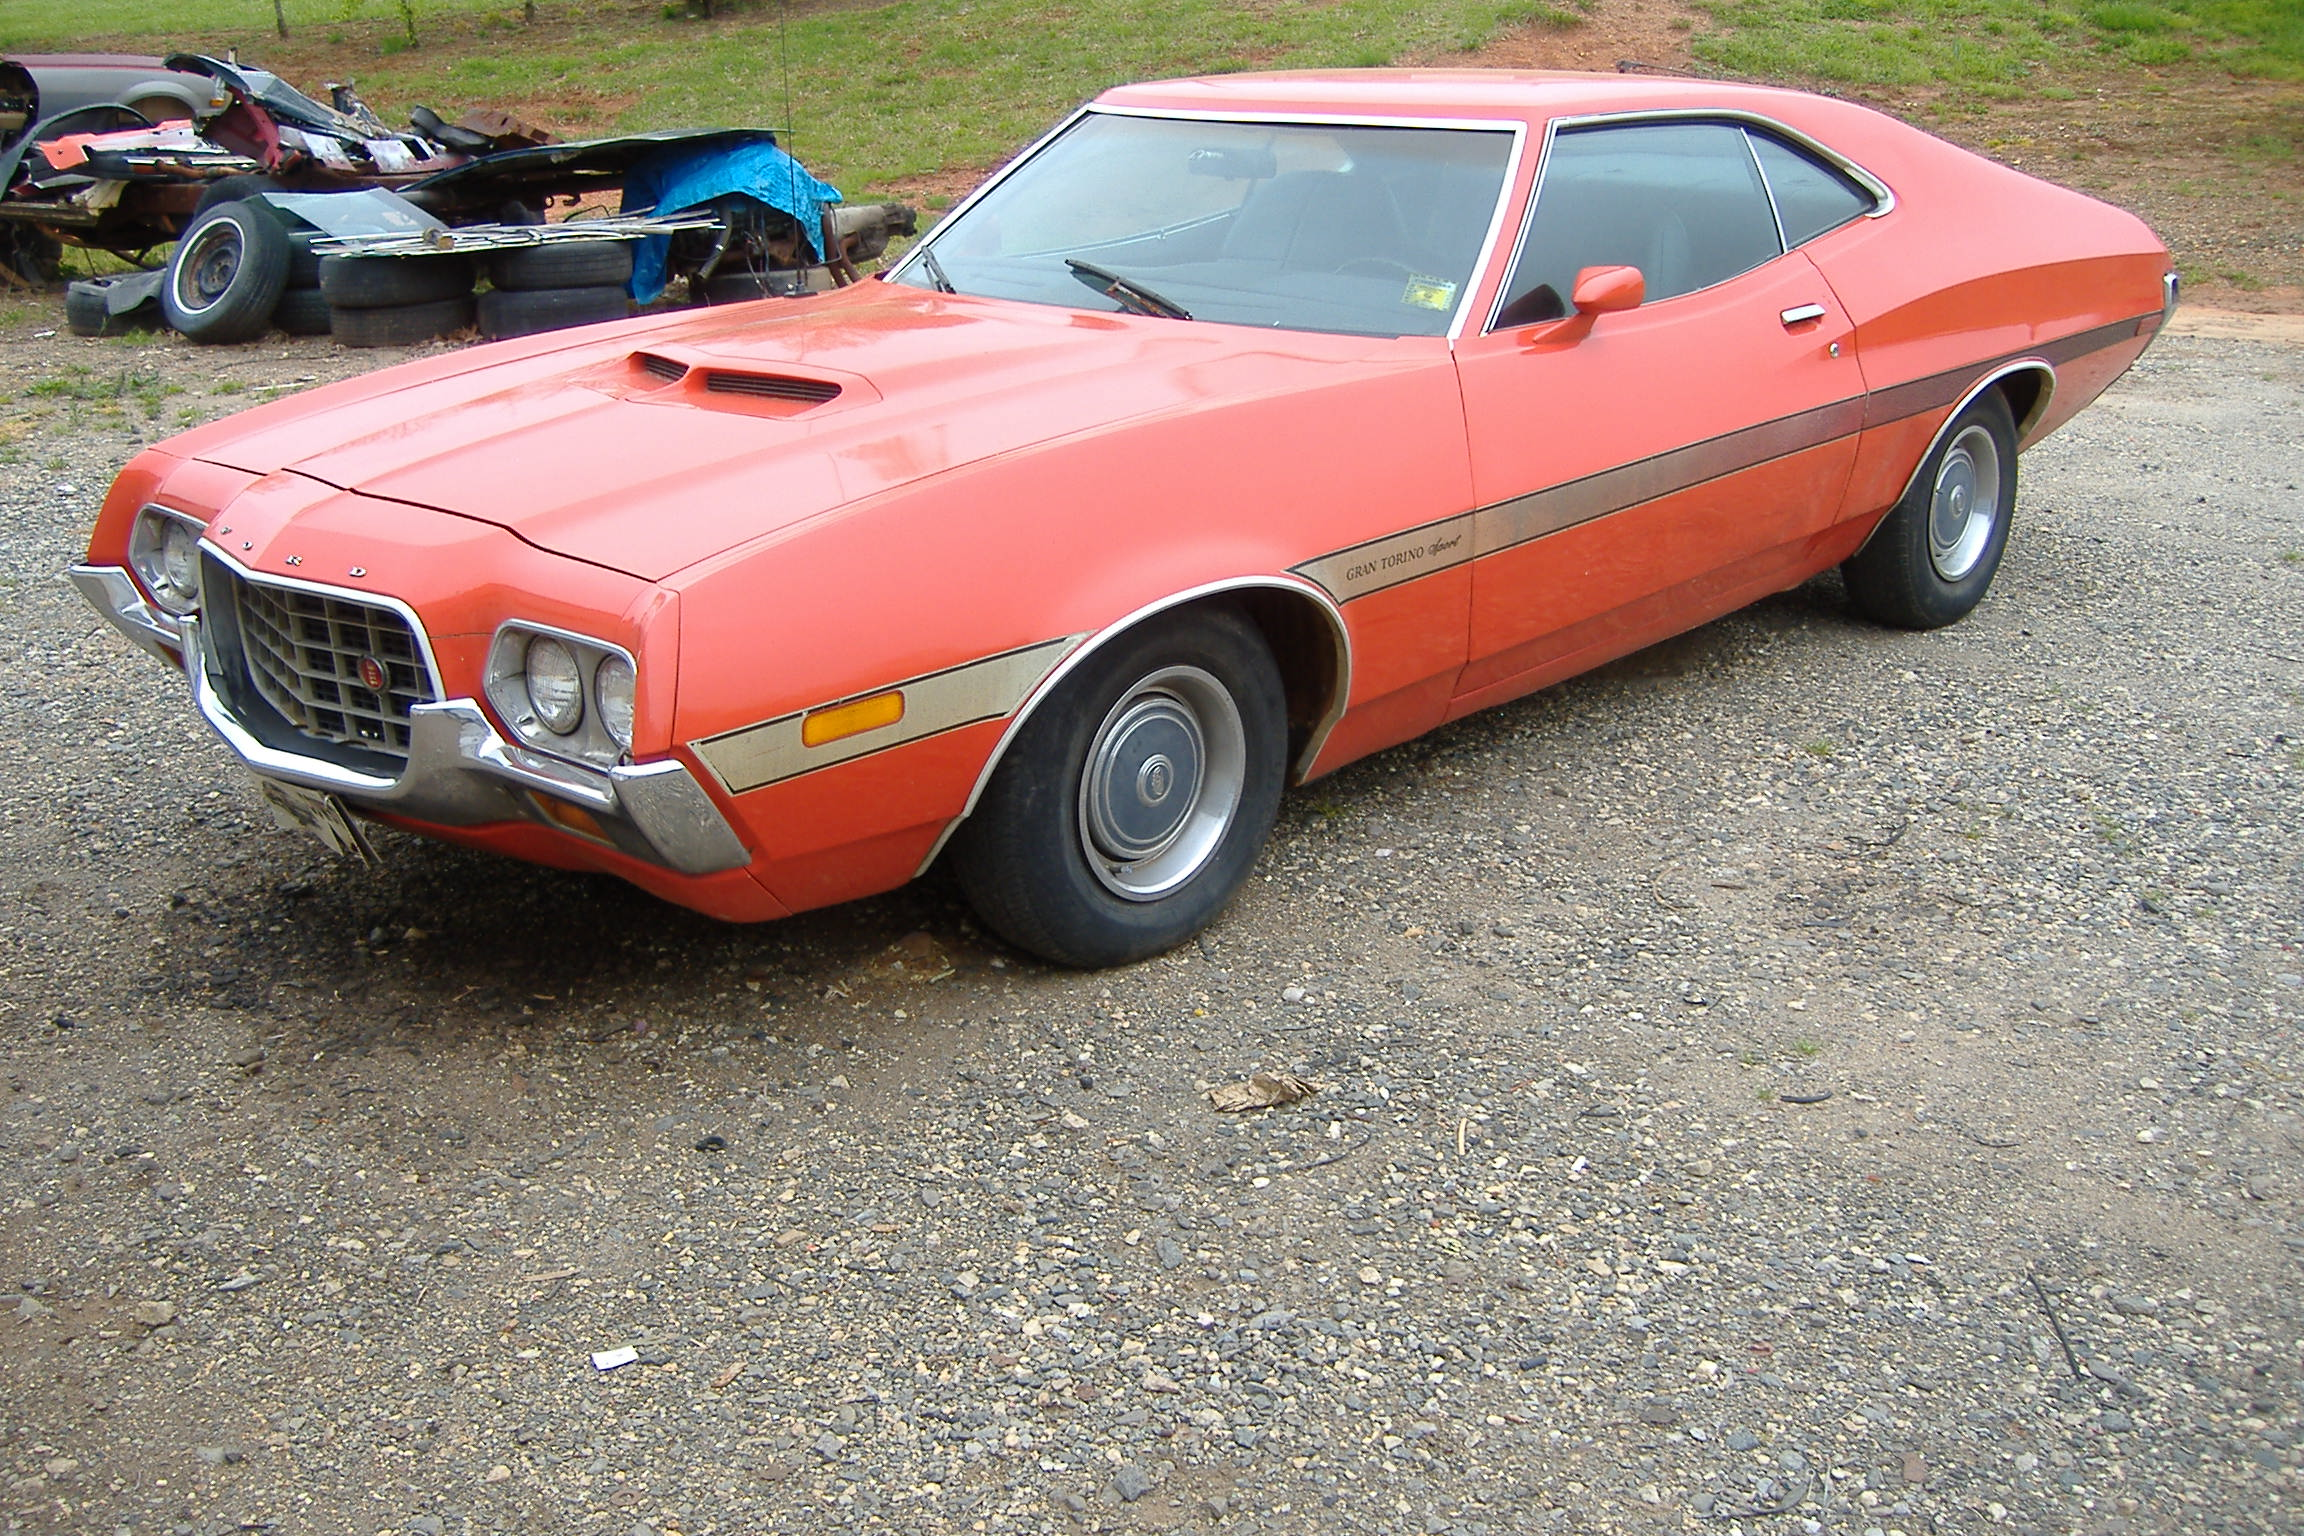 1972 Gran Torino For Sale Craigslist >> ...measurements for Lazer Stripe 72 - The Ford Torino Page Forum